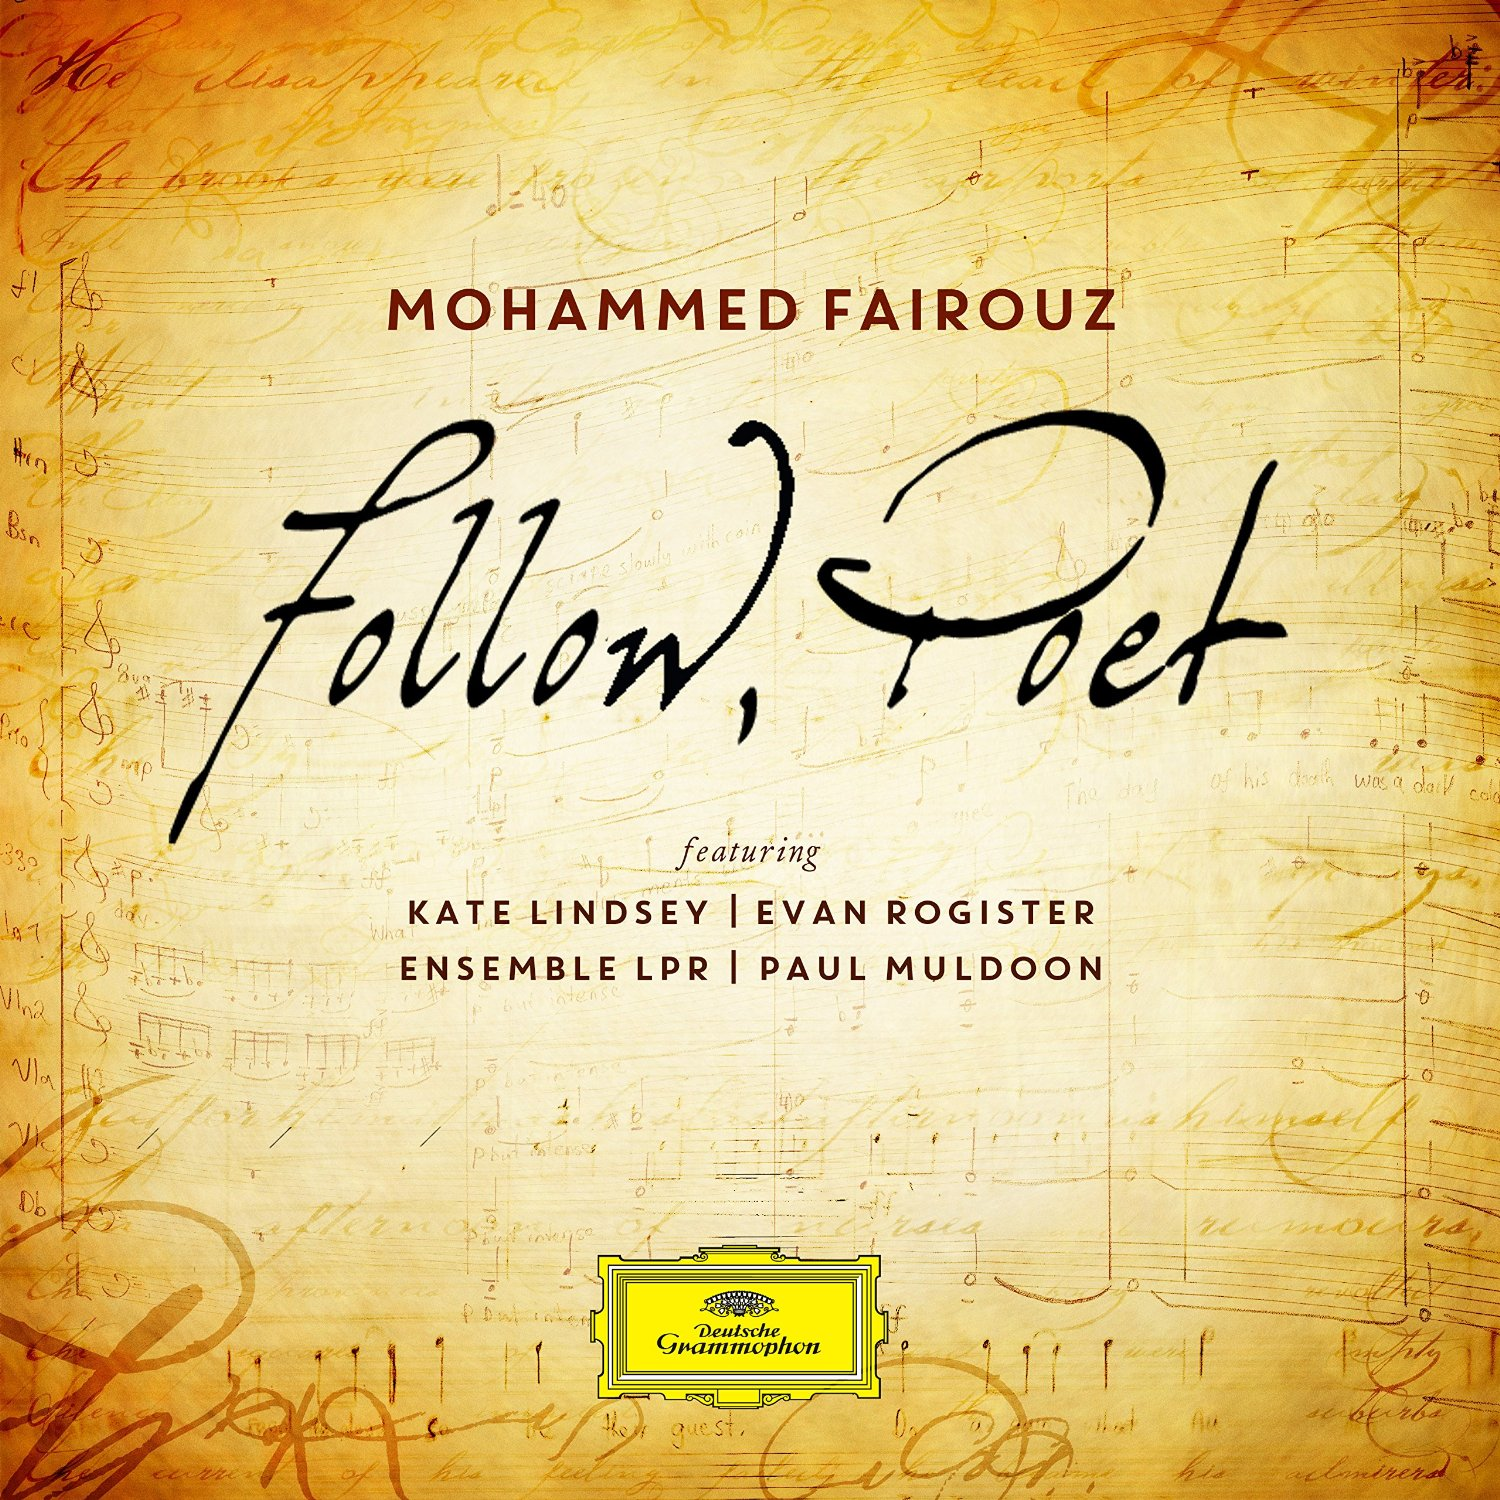 Mohammed Fairouz: Follow, poet